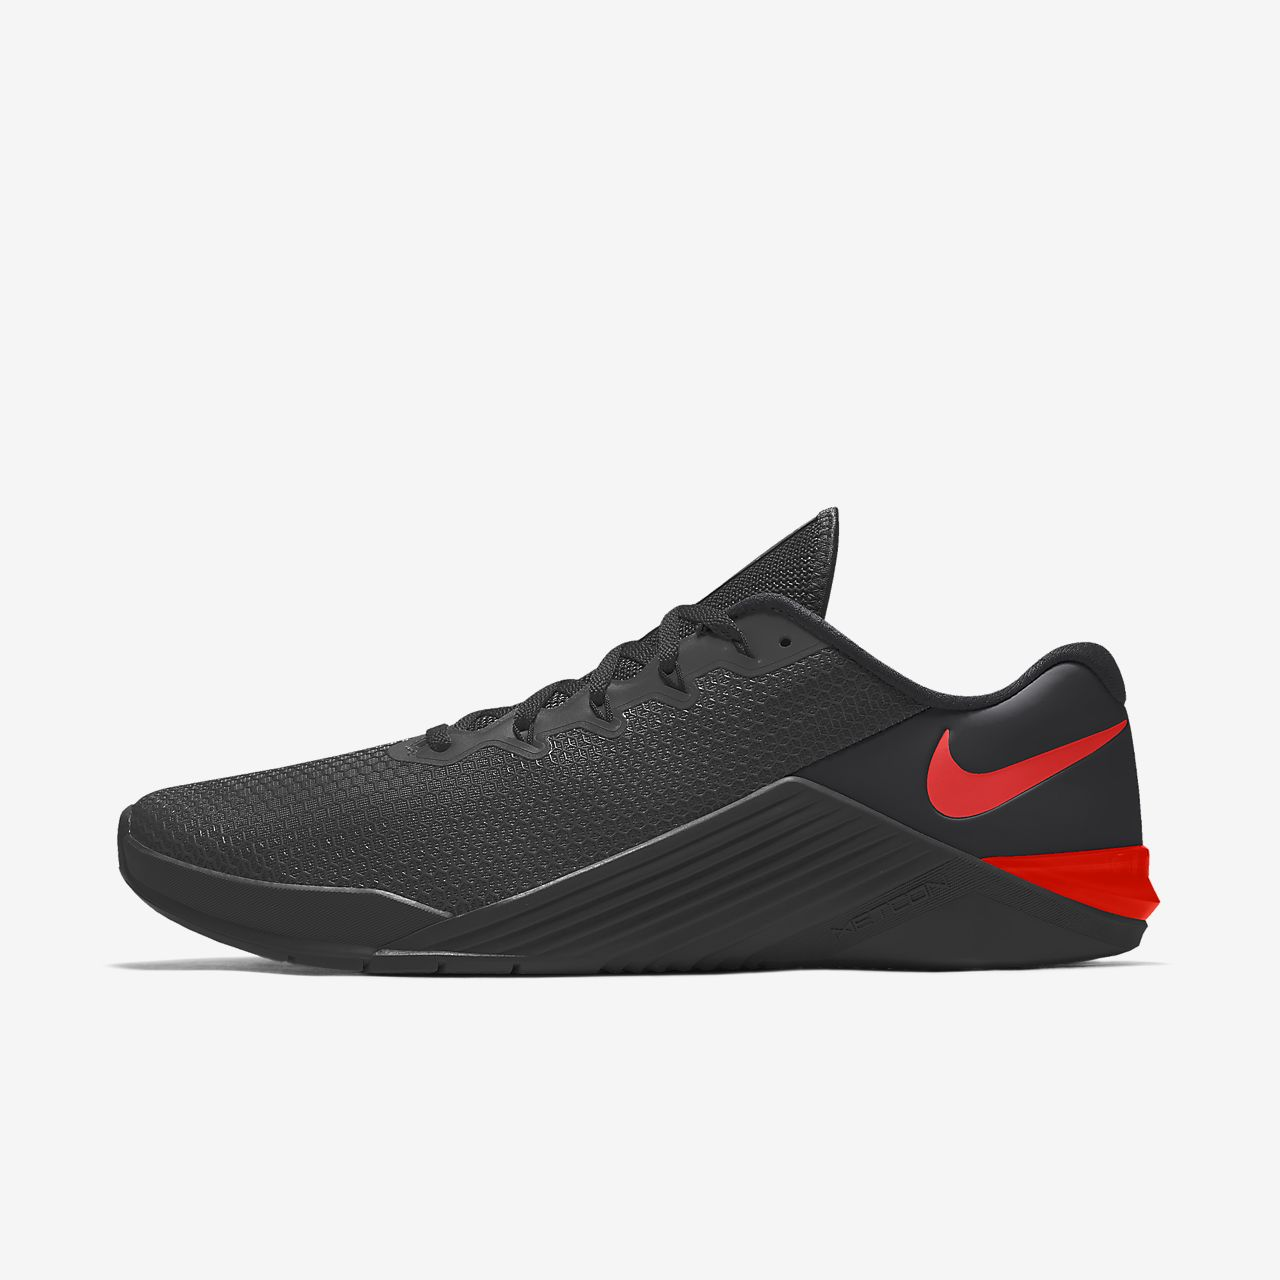 Nike Metcon 5 By You Custom Cross TrainingWeightlifting Shoe